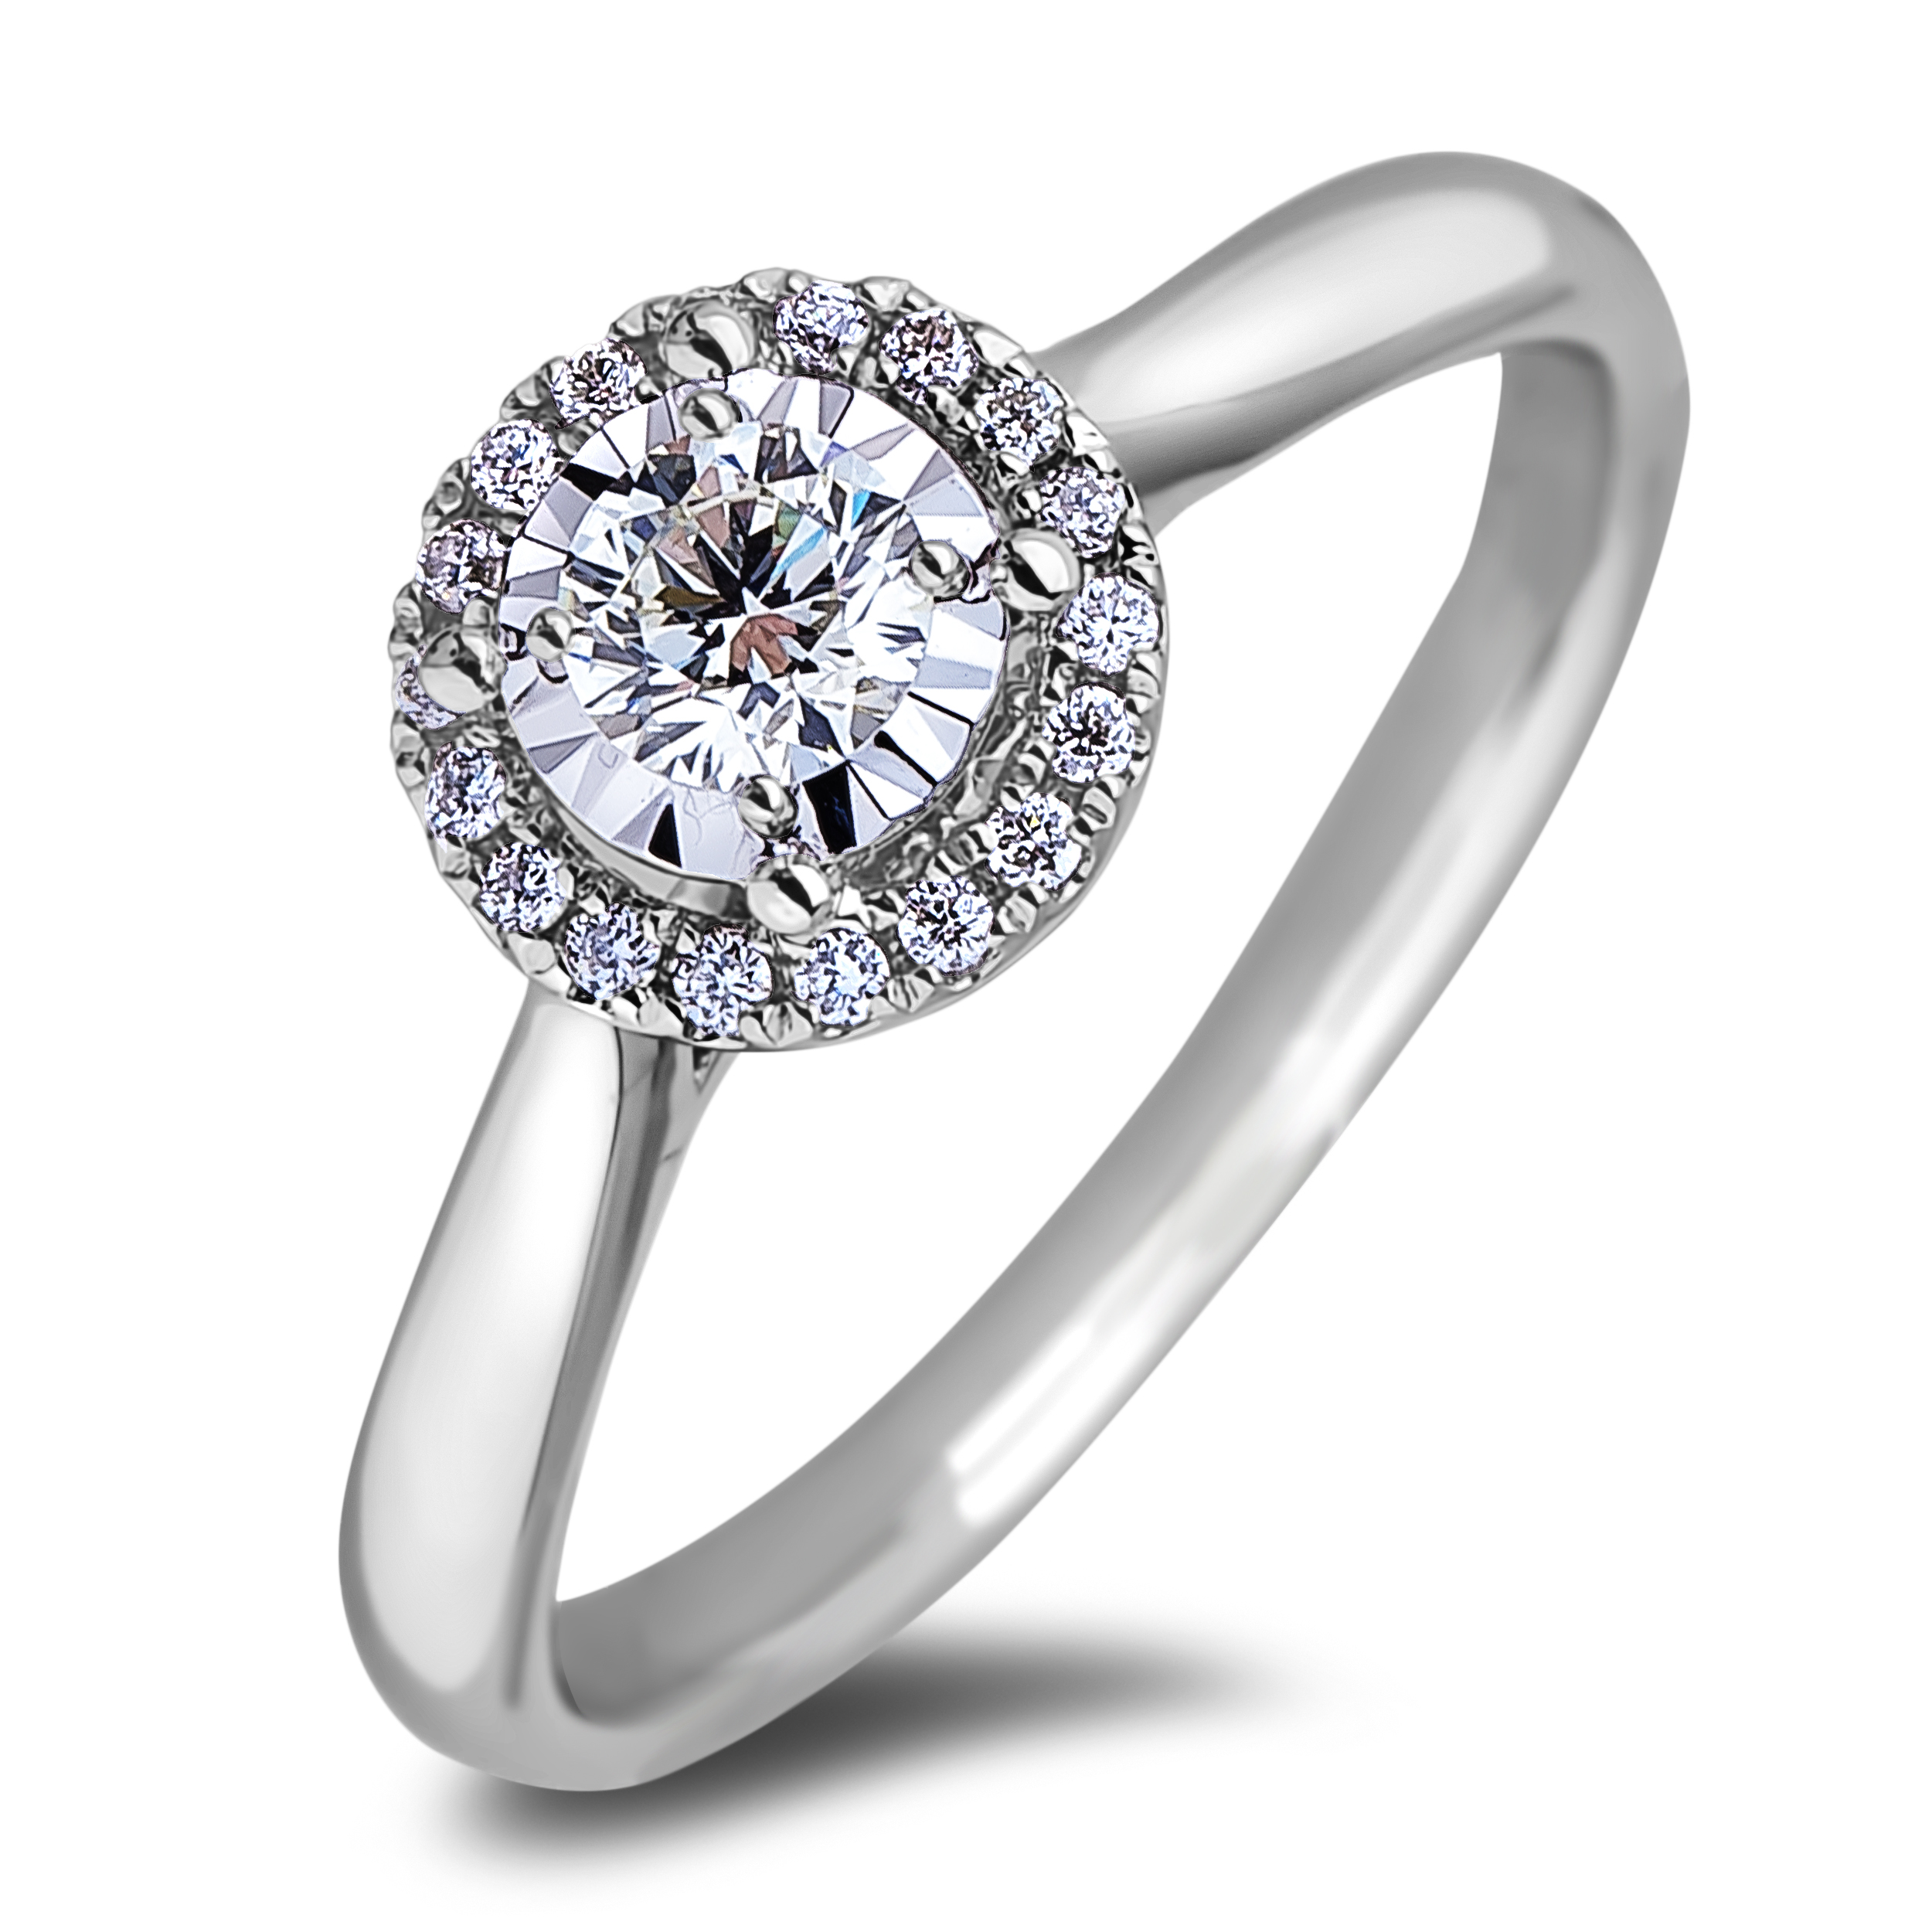 Diamond Engagement Halo Rings JS_AFCR1121020 (Rings)